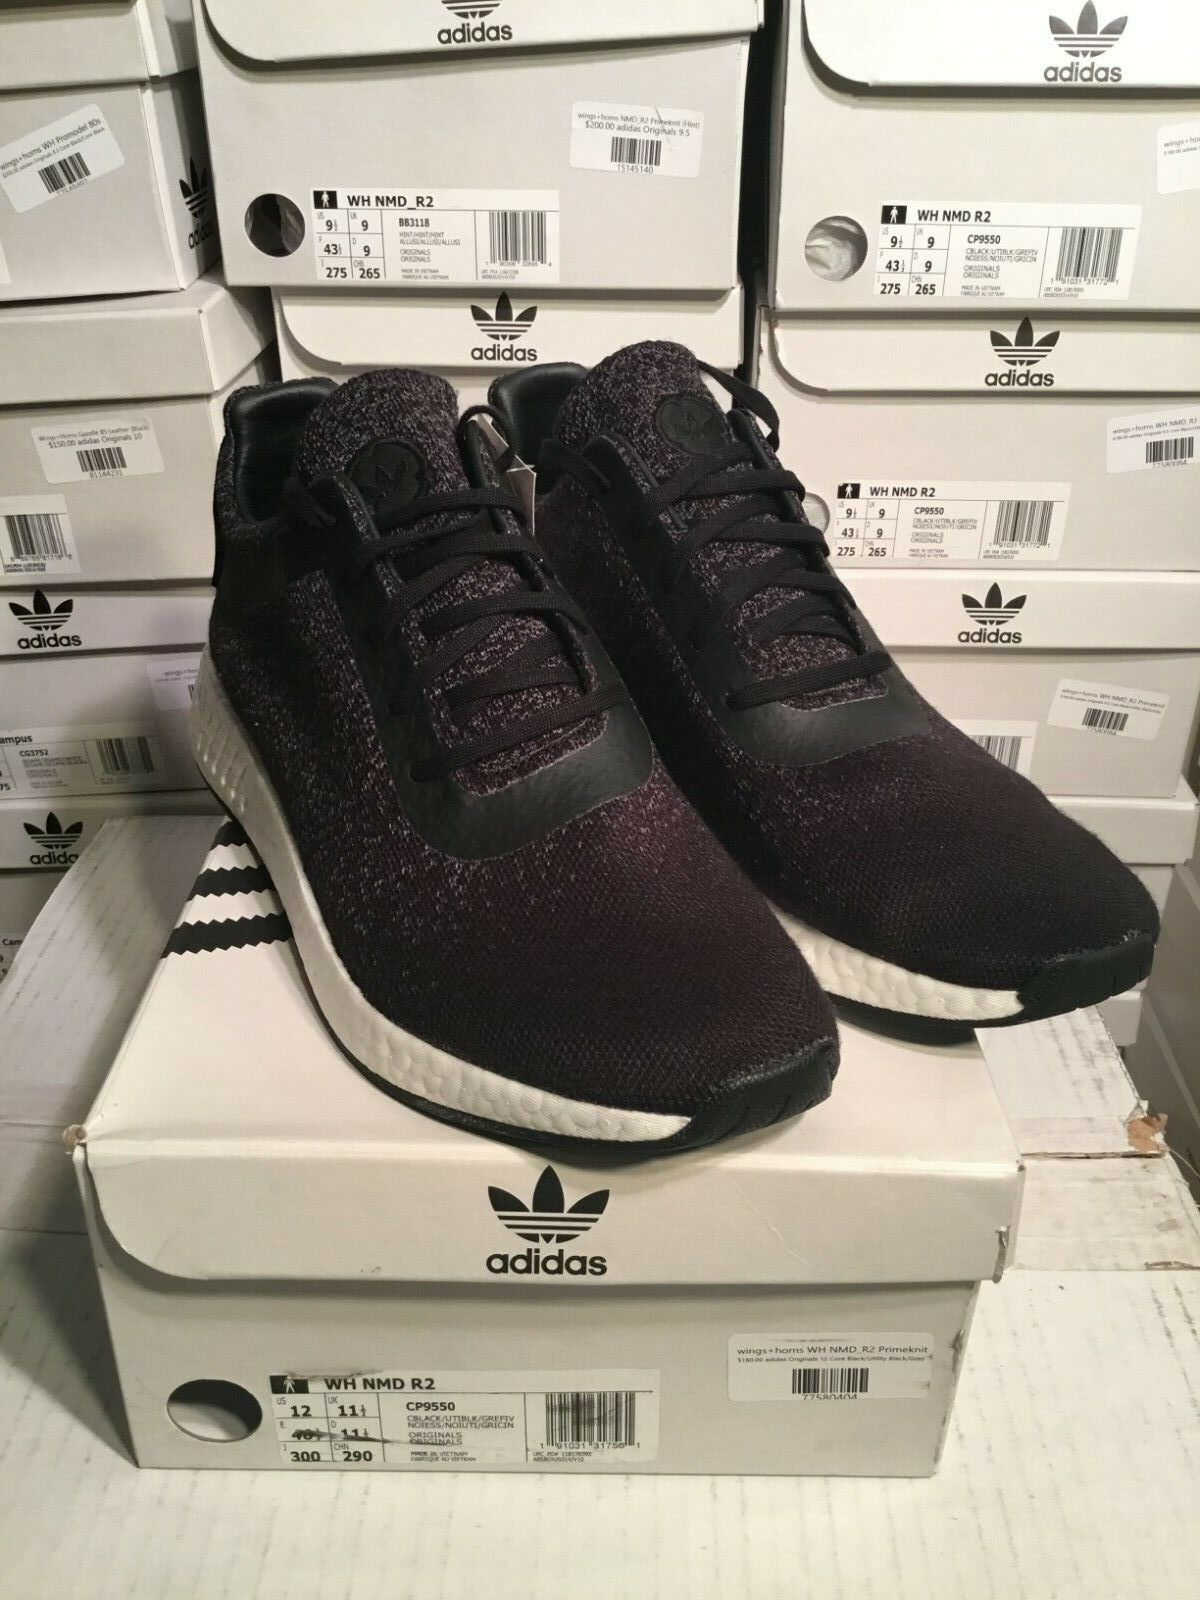 SALE Adidas Consortium Consortium Consortium X Wings + Horns WH NMD R2 Black CP9550 Size 8.5-12 cf3854